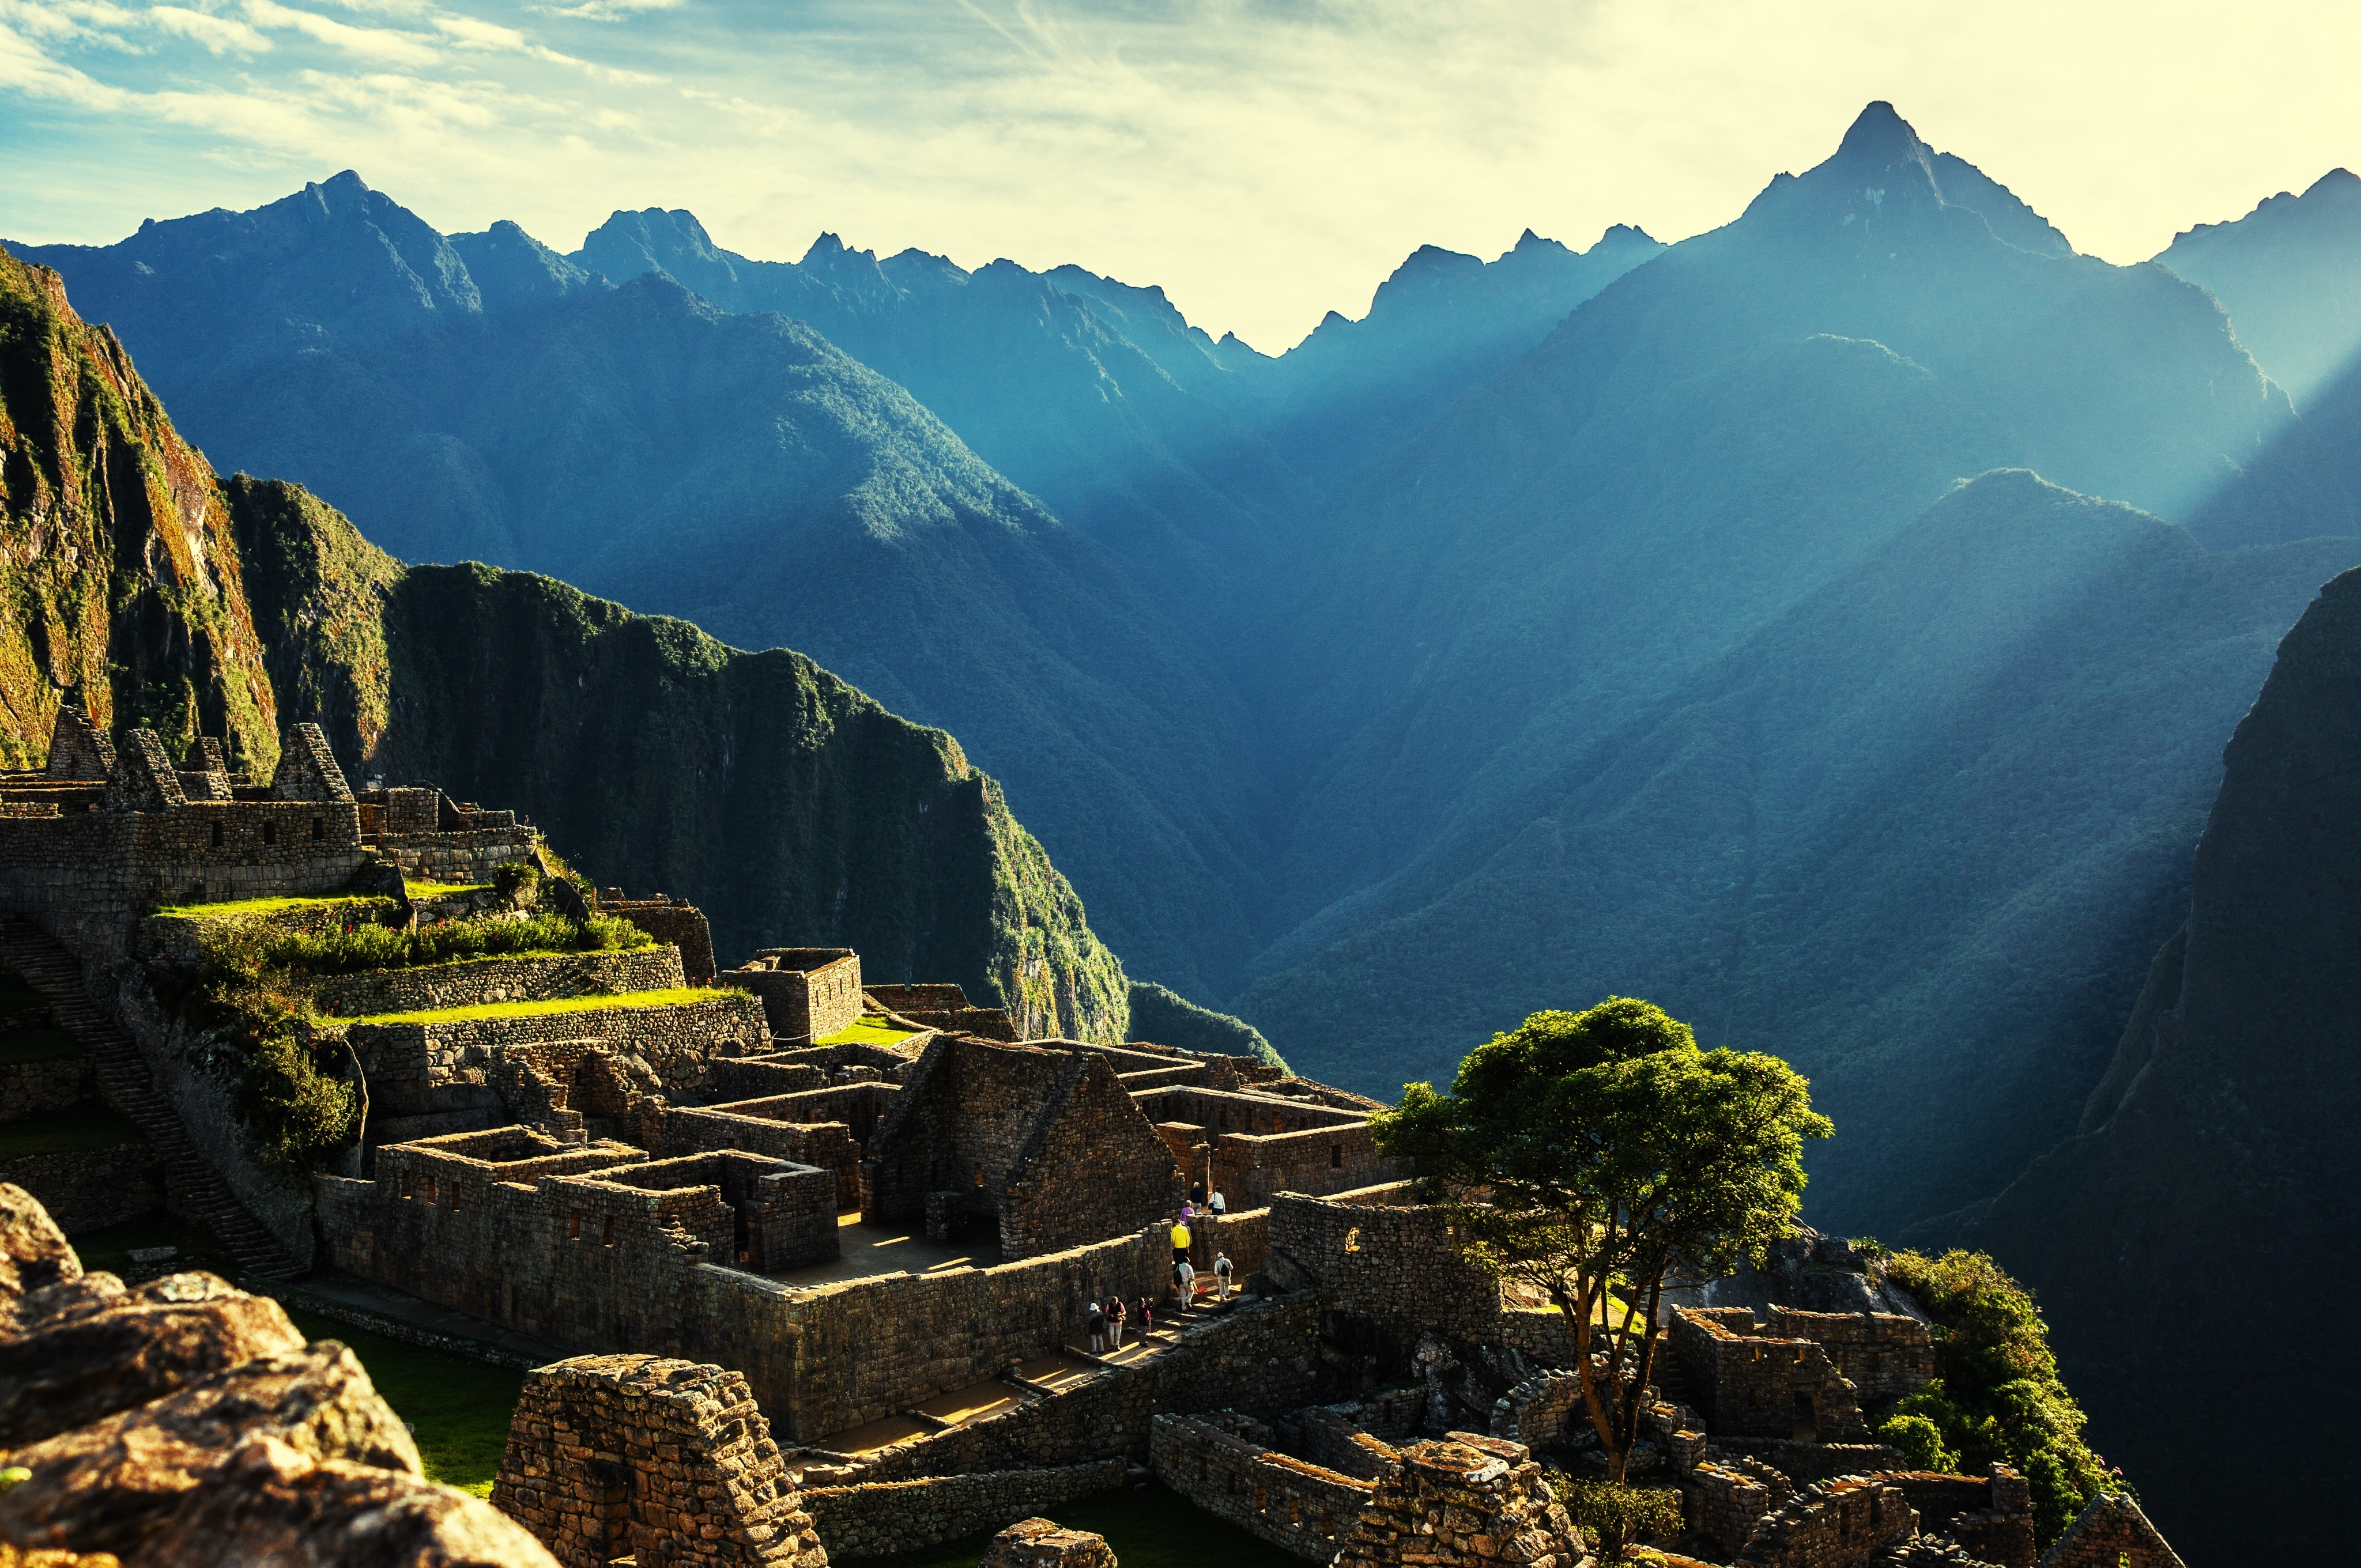 Staircases Guide To Machu Picchu Mysterious Beginnings And Modern Day